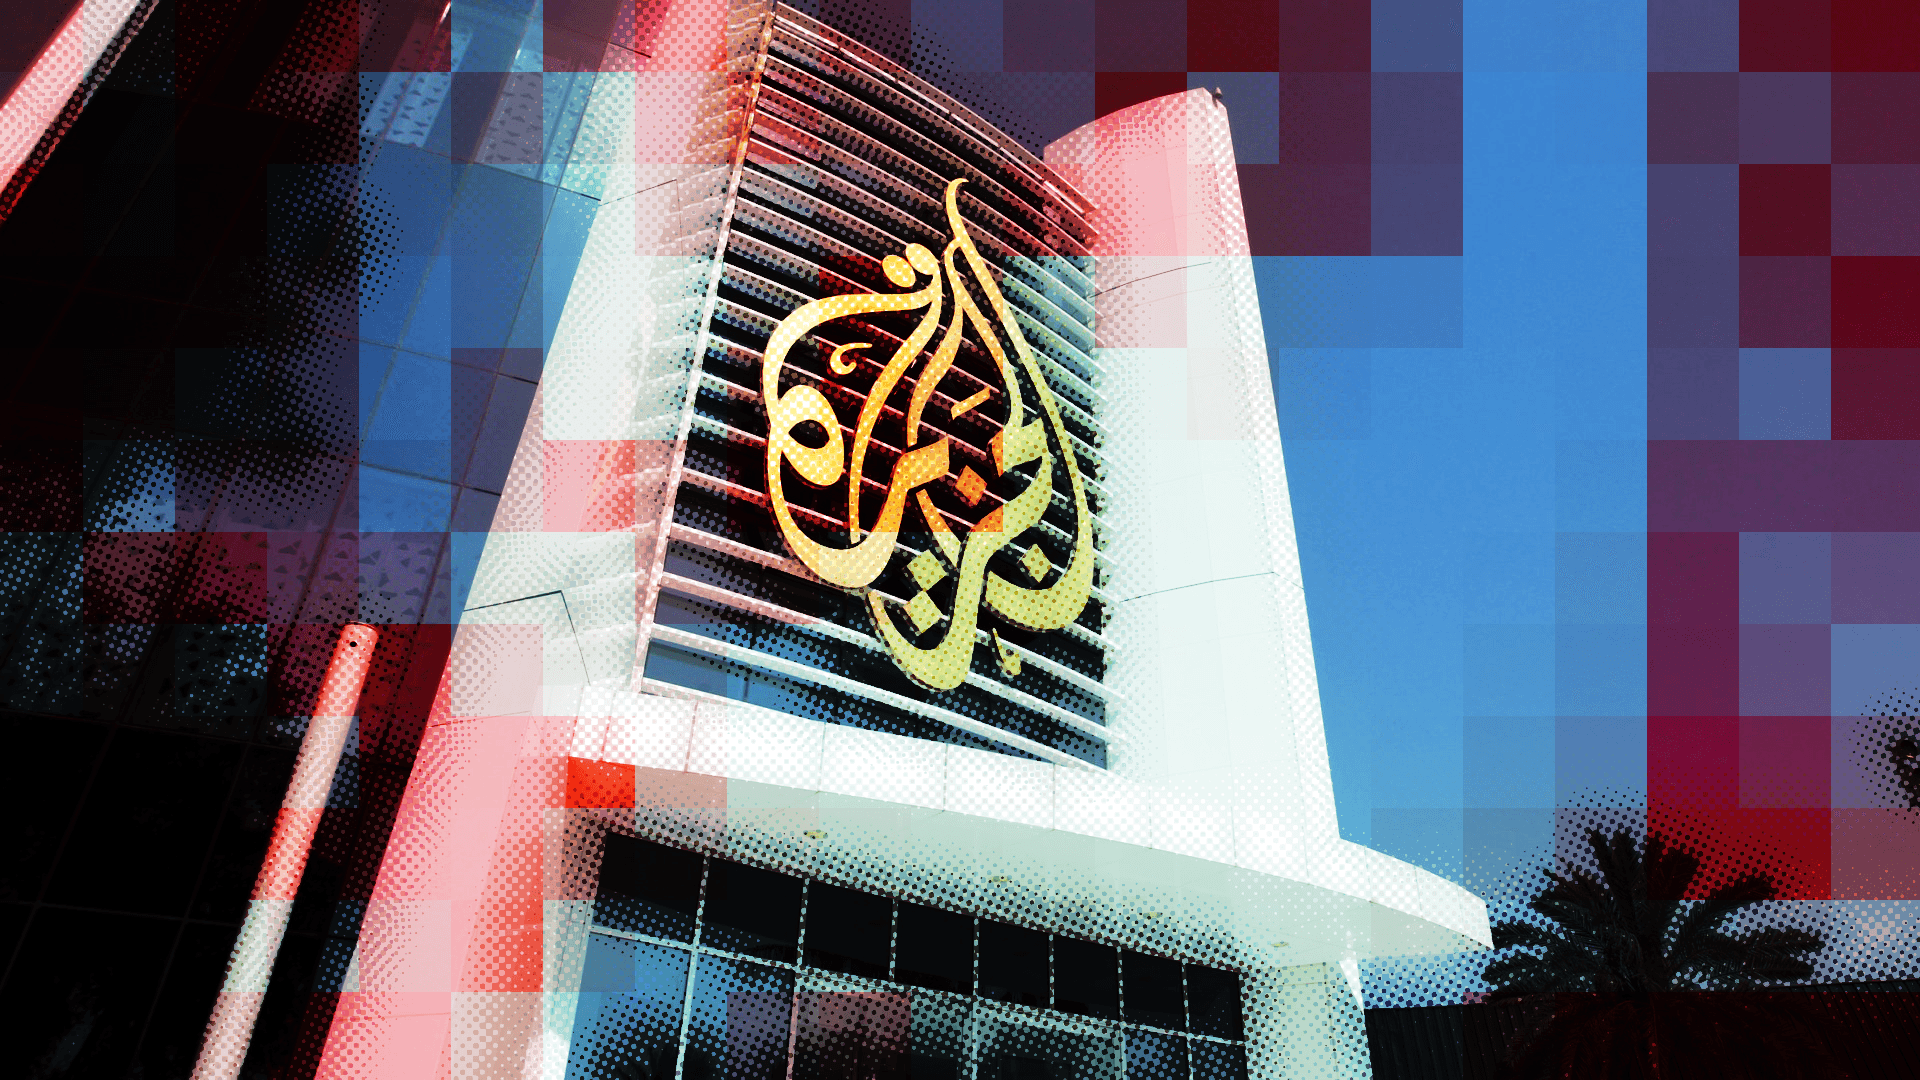 AL JAZEERA OFFICES // QATAR: THE FRINGE POLICY OUTCAST